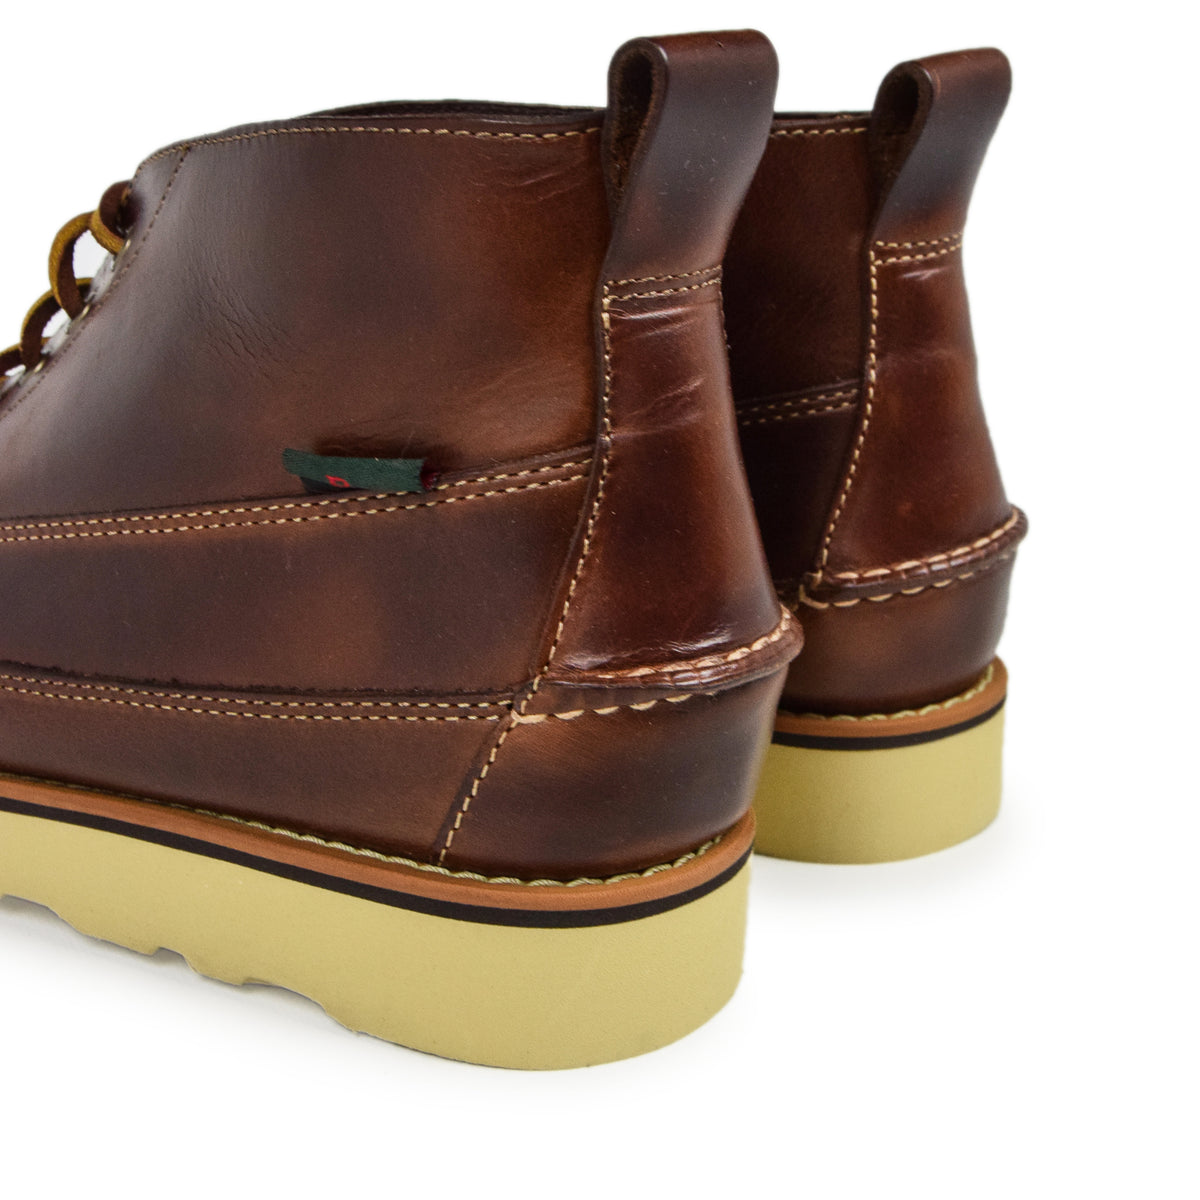 G.H. Bass & Co. Camp Moc III Ranger Pull Up Dark Brown Leather